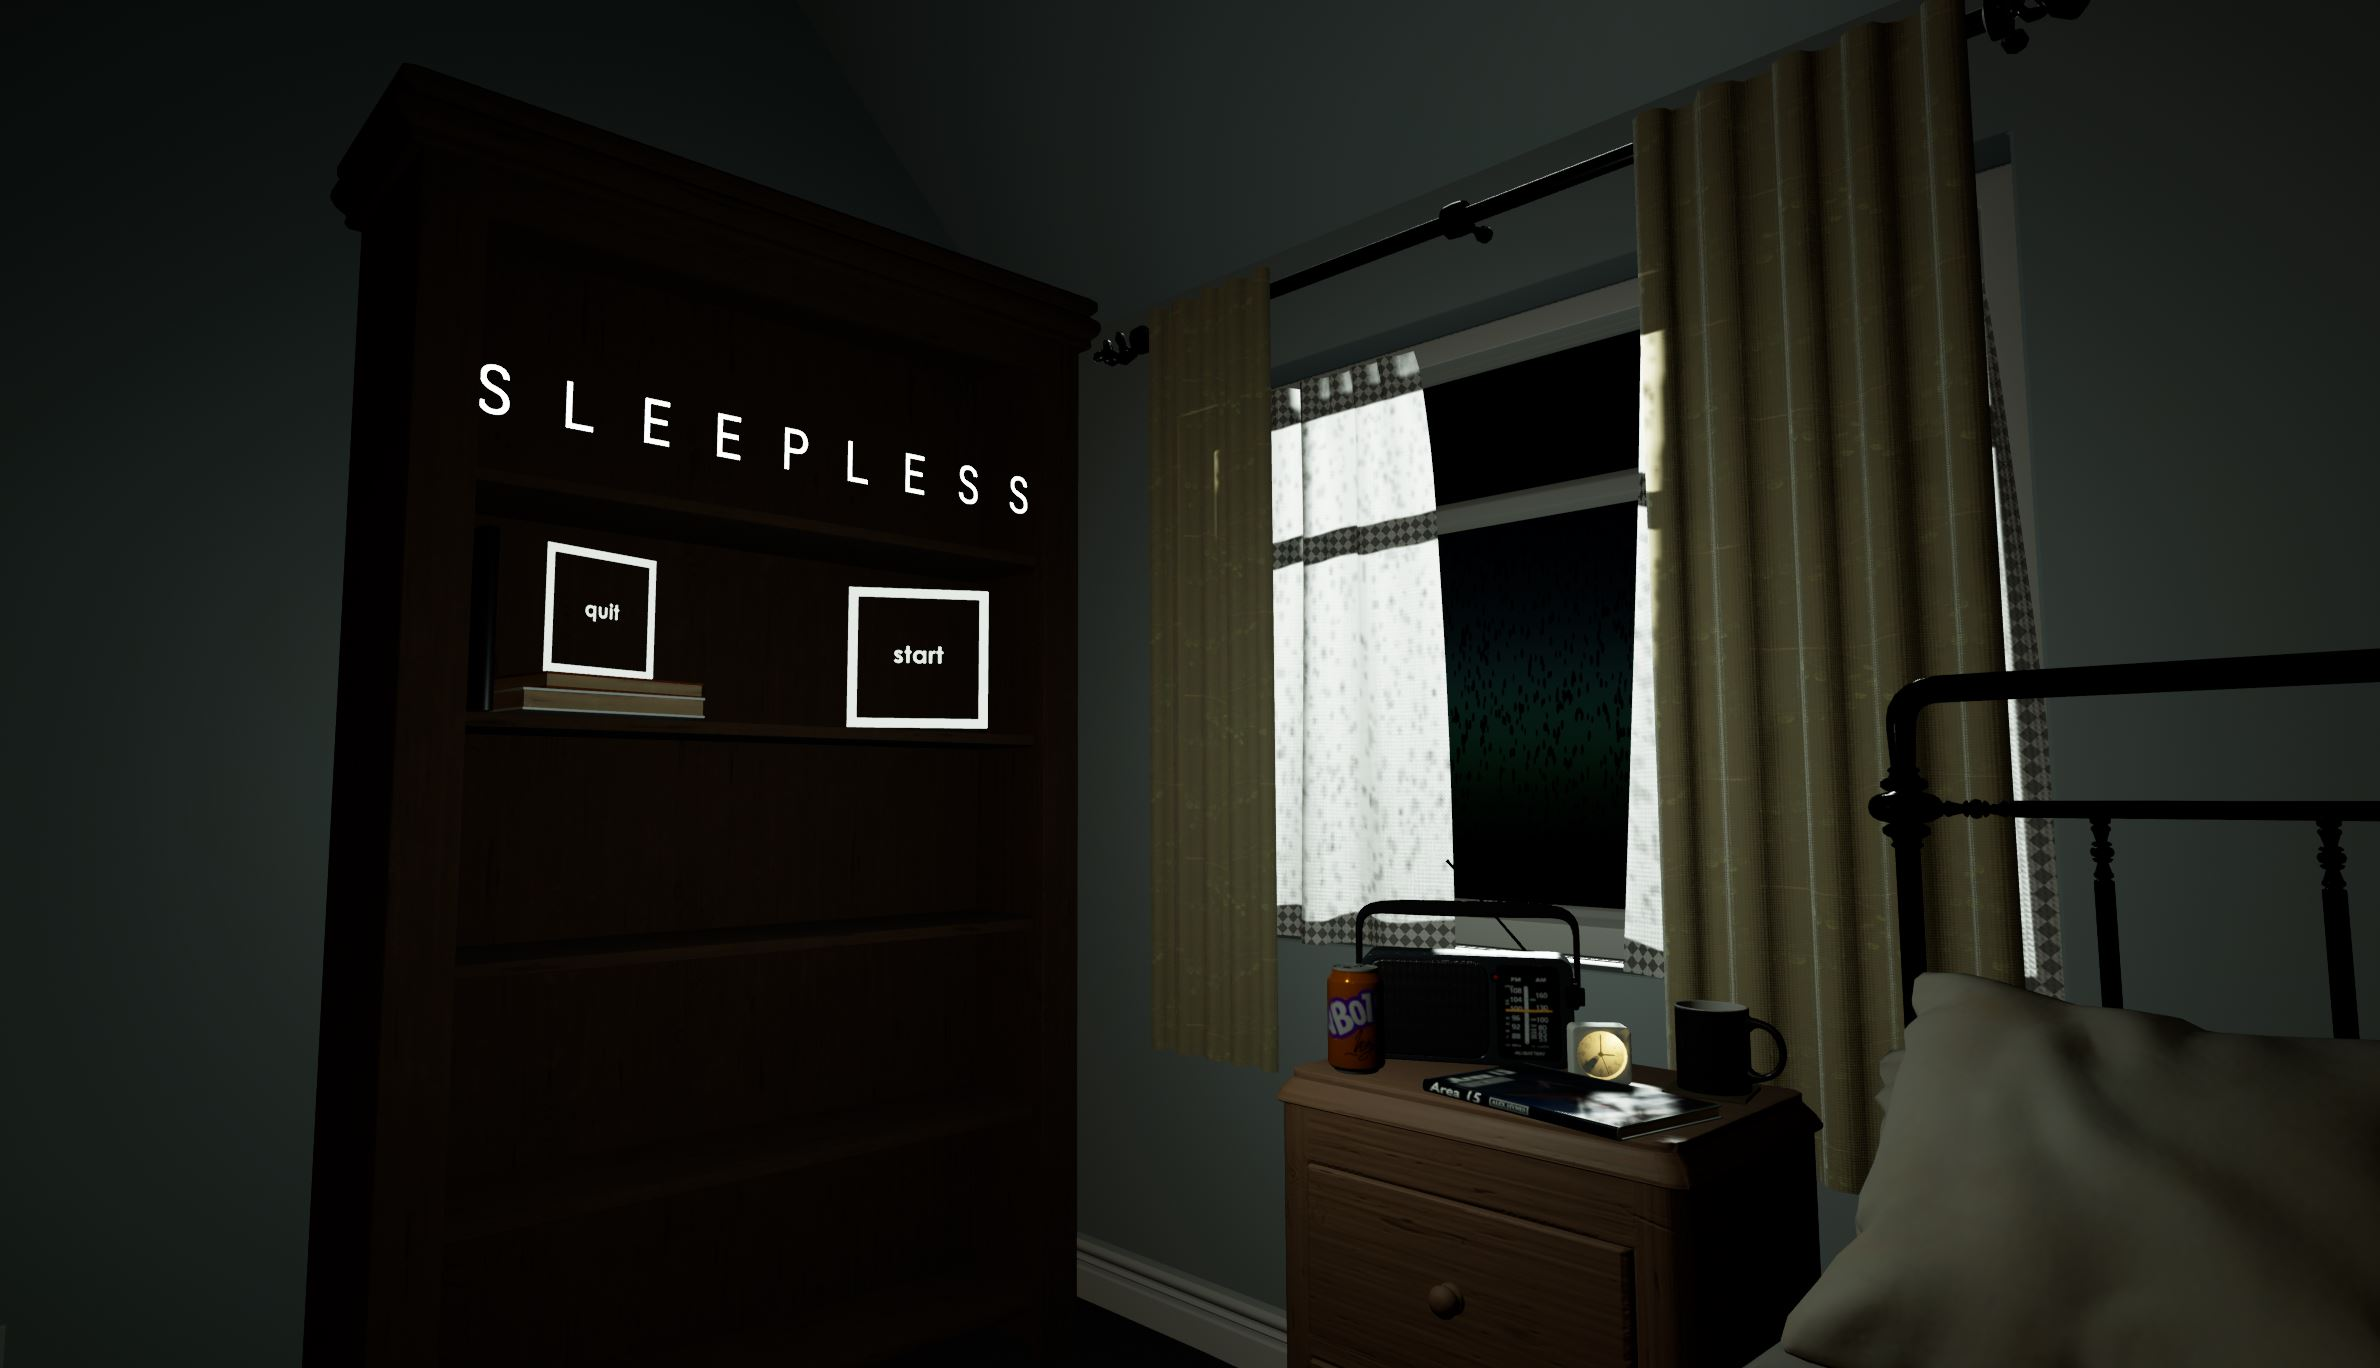 Sleepless: VR Project - Interactive Start Screen Image